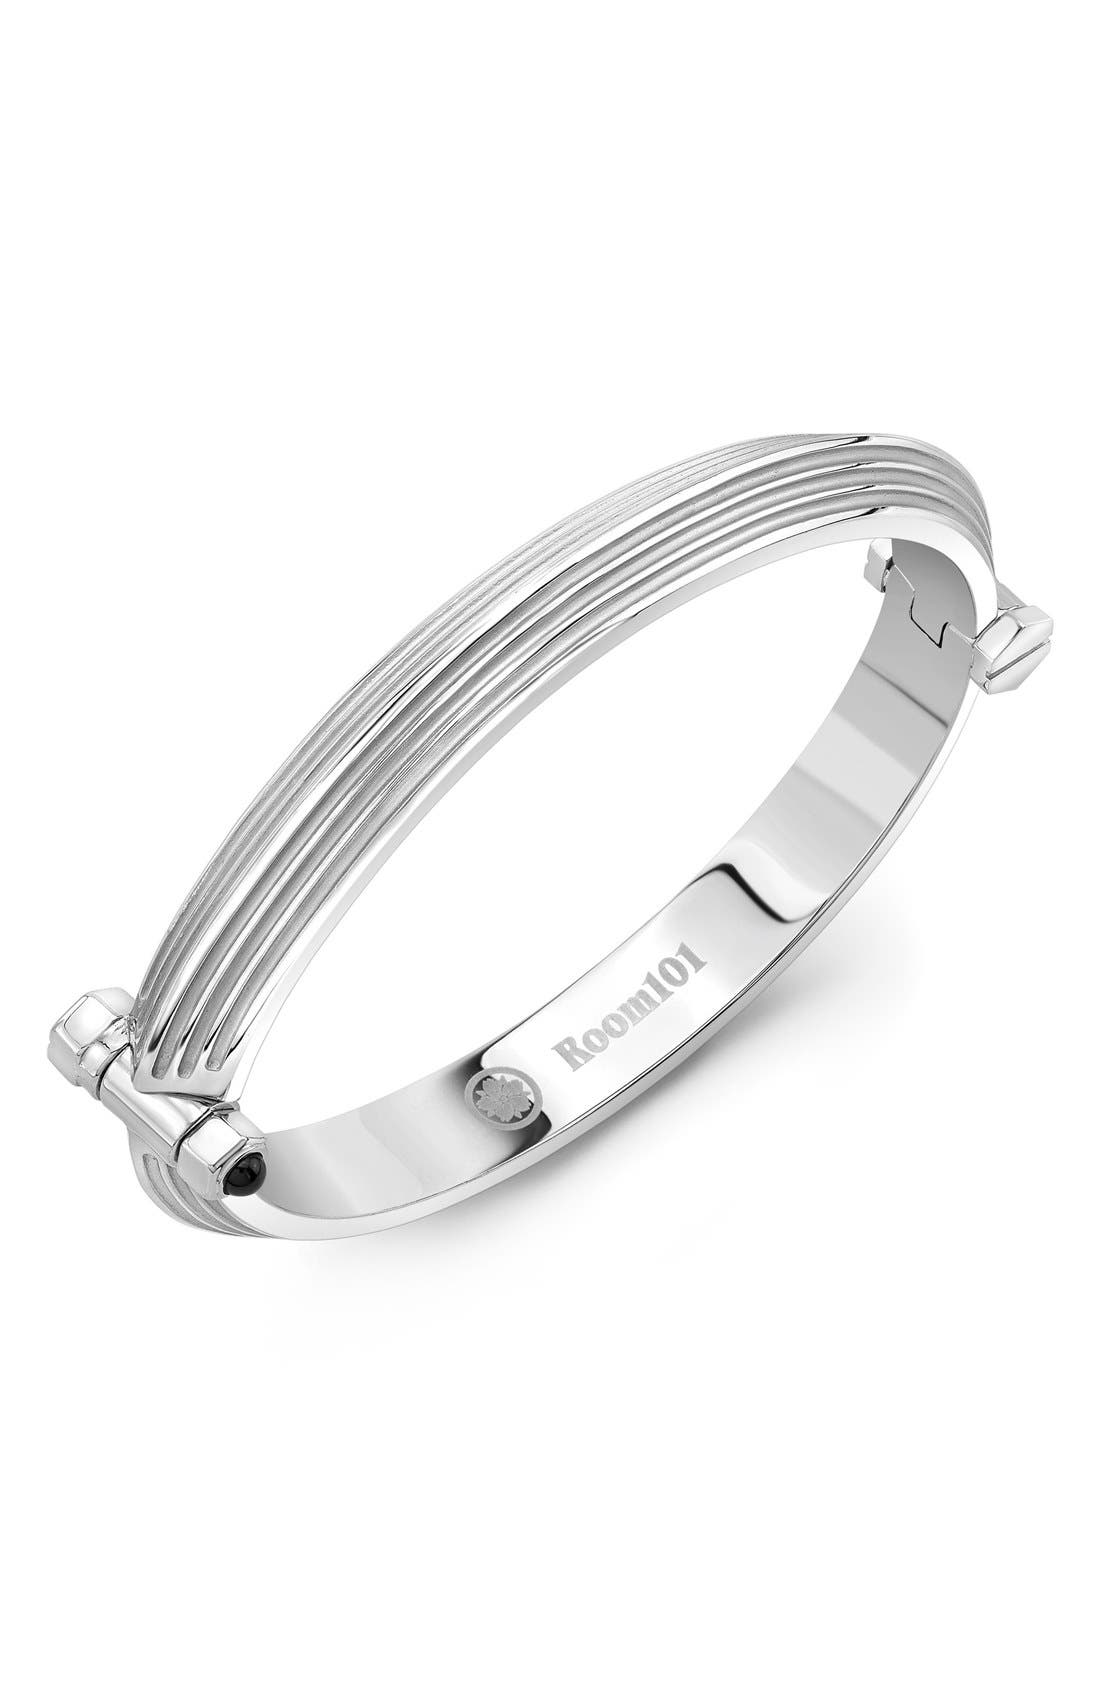 Main Image - Room101 Blade Bangle Bracelet